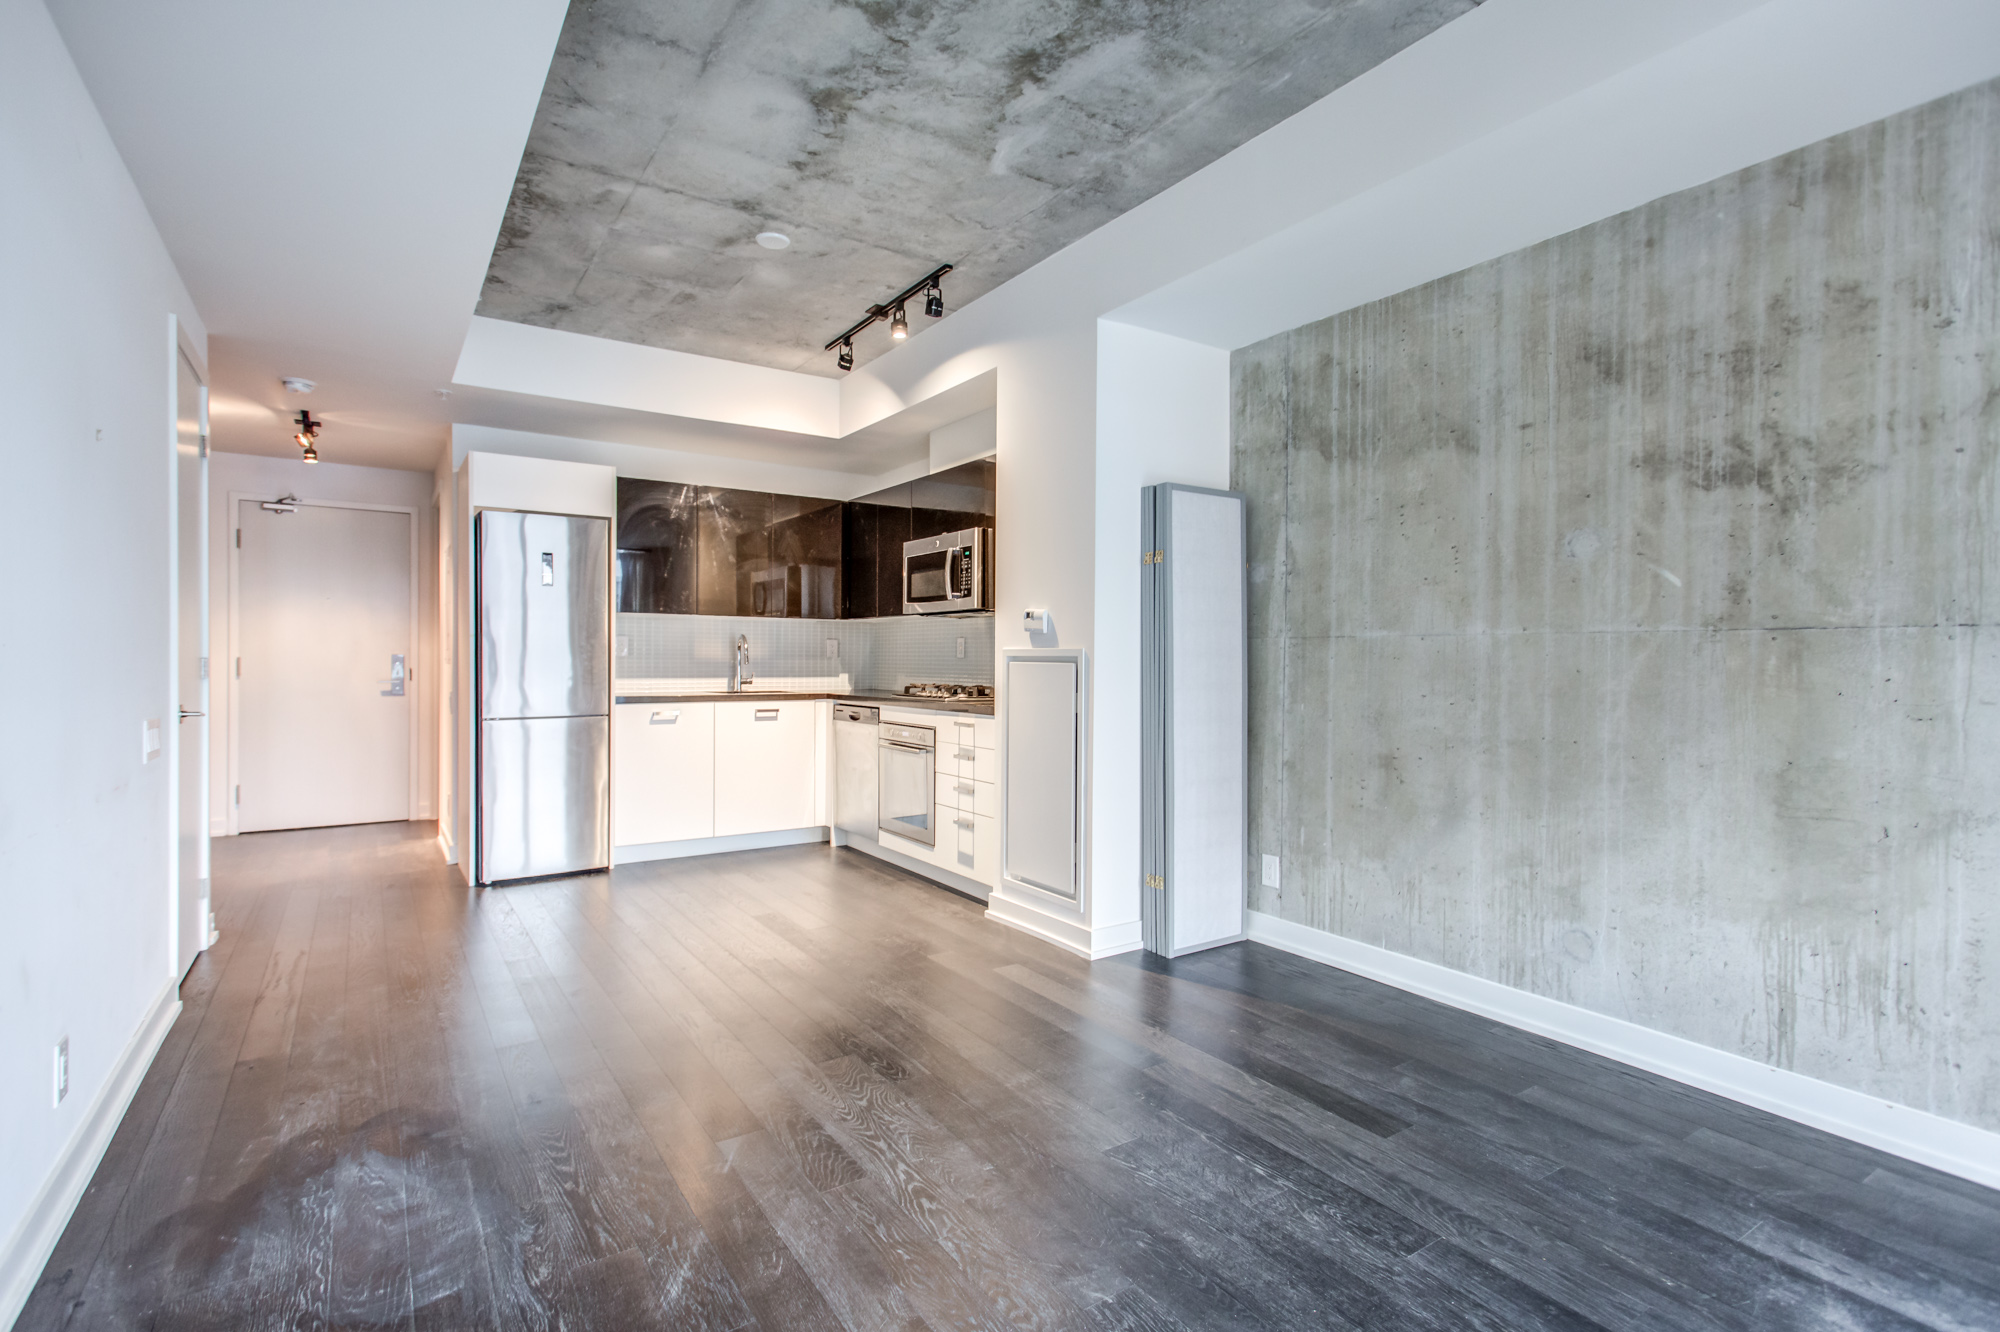 Spacious and empty condo unit at 39 Brant St Unit 918, Brant Park Lofts, in Queen West Toronto.